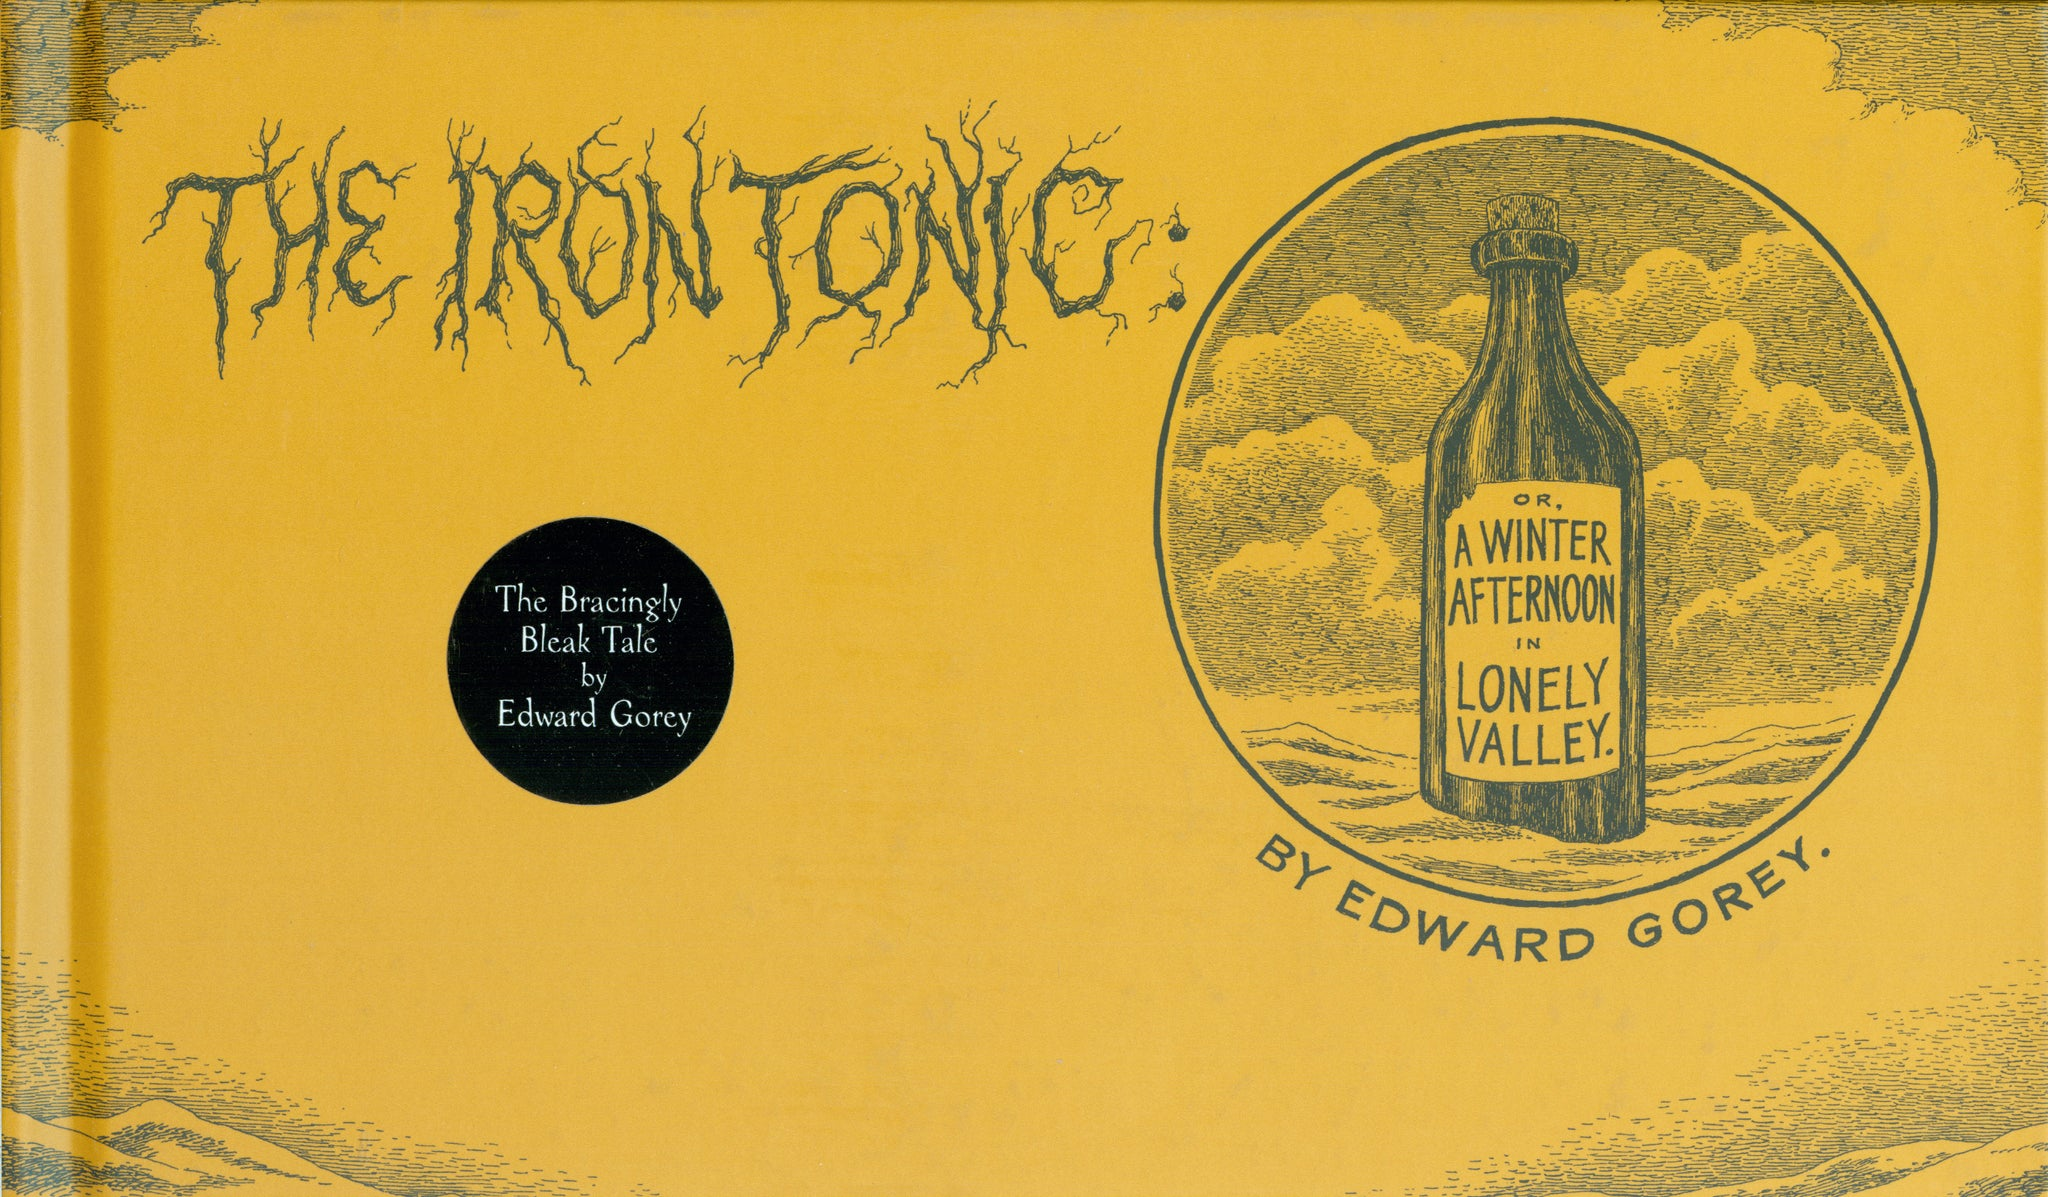 The Iron Tonic: Or, A Winter Afternoon in Lonely Valley by Edward Gorey